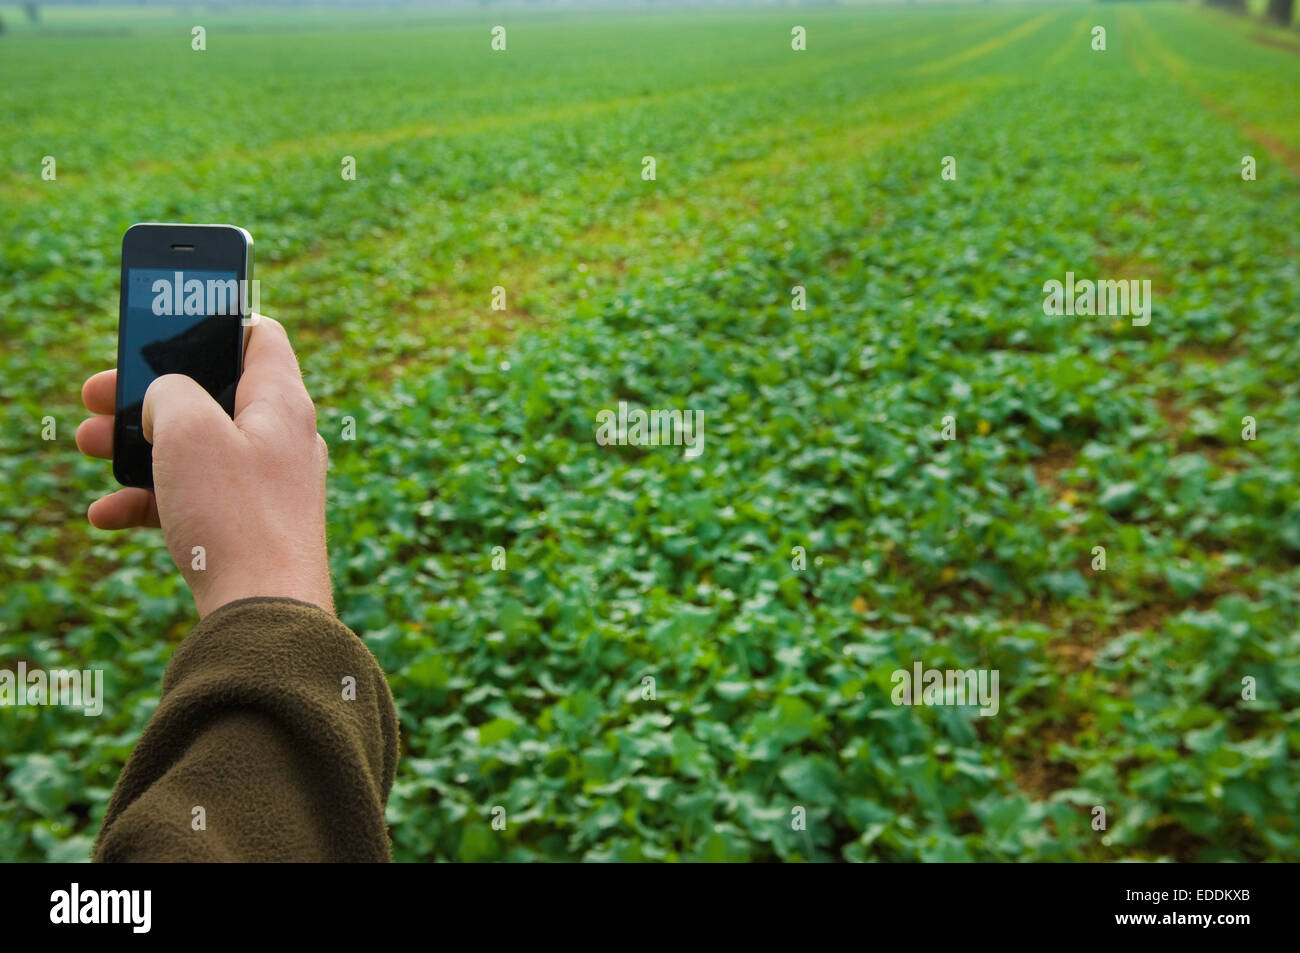 Hand holding a mobile phone, taking a picture of a field. - Stock Image